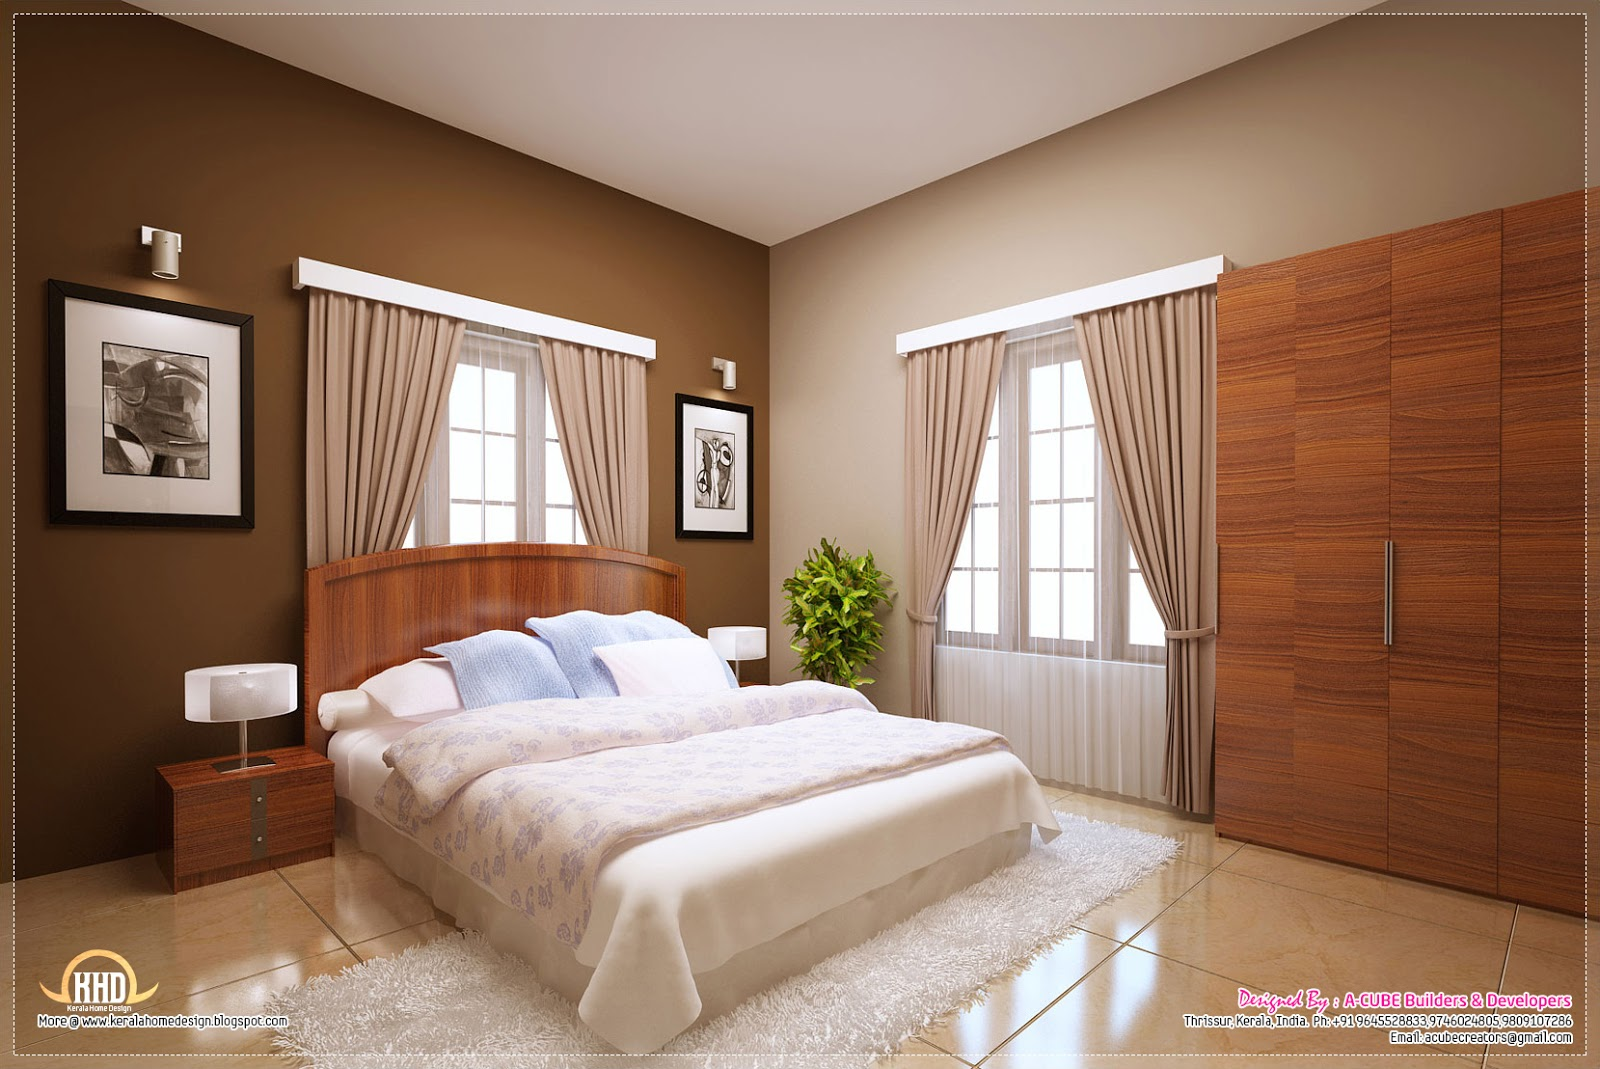 Awesome interior decoration ideas house design plans for Interior home design bedroom ideas